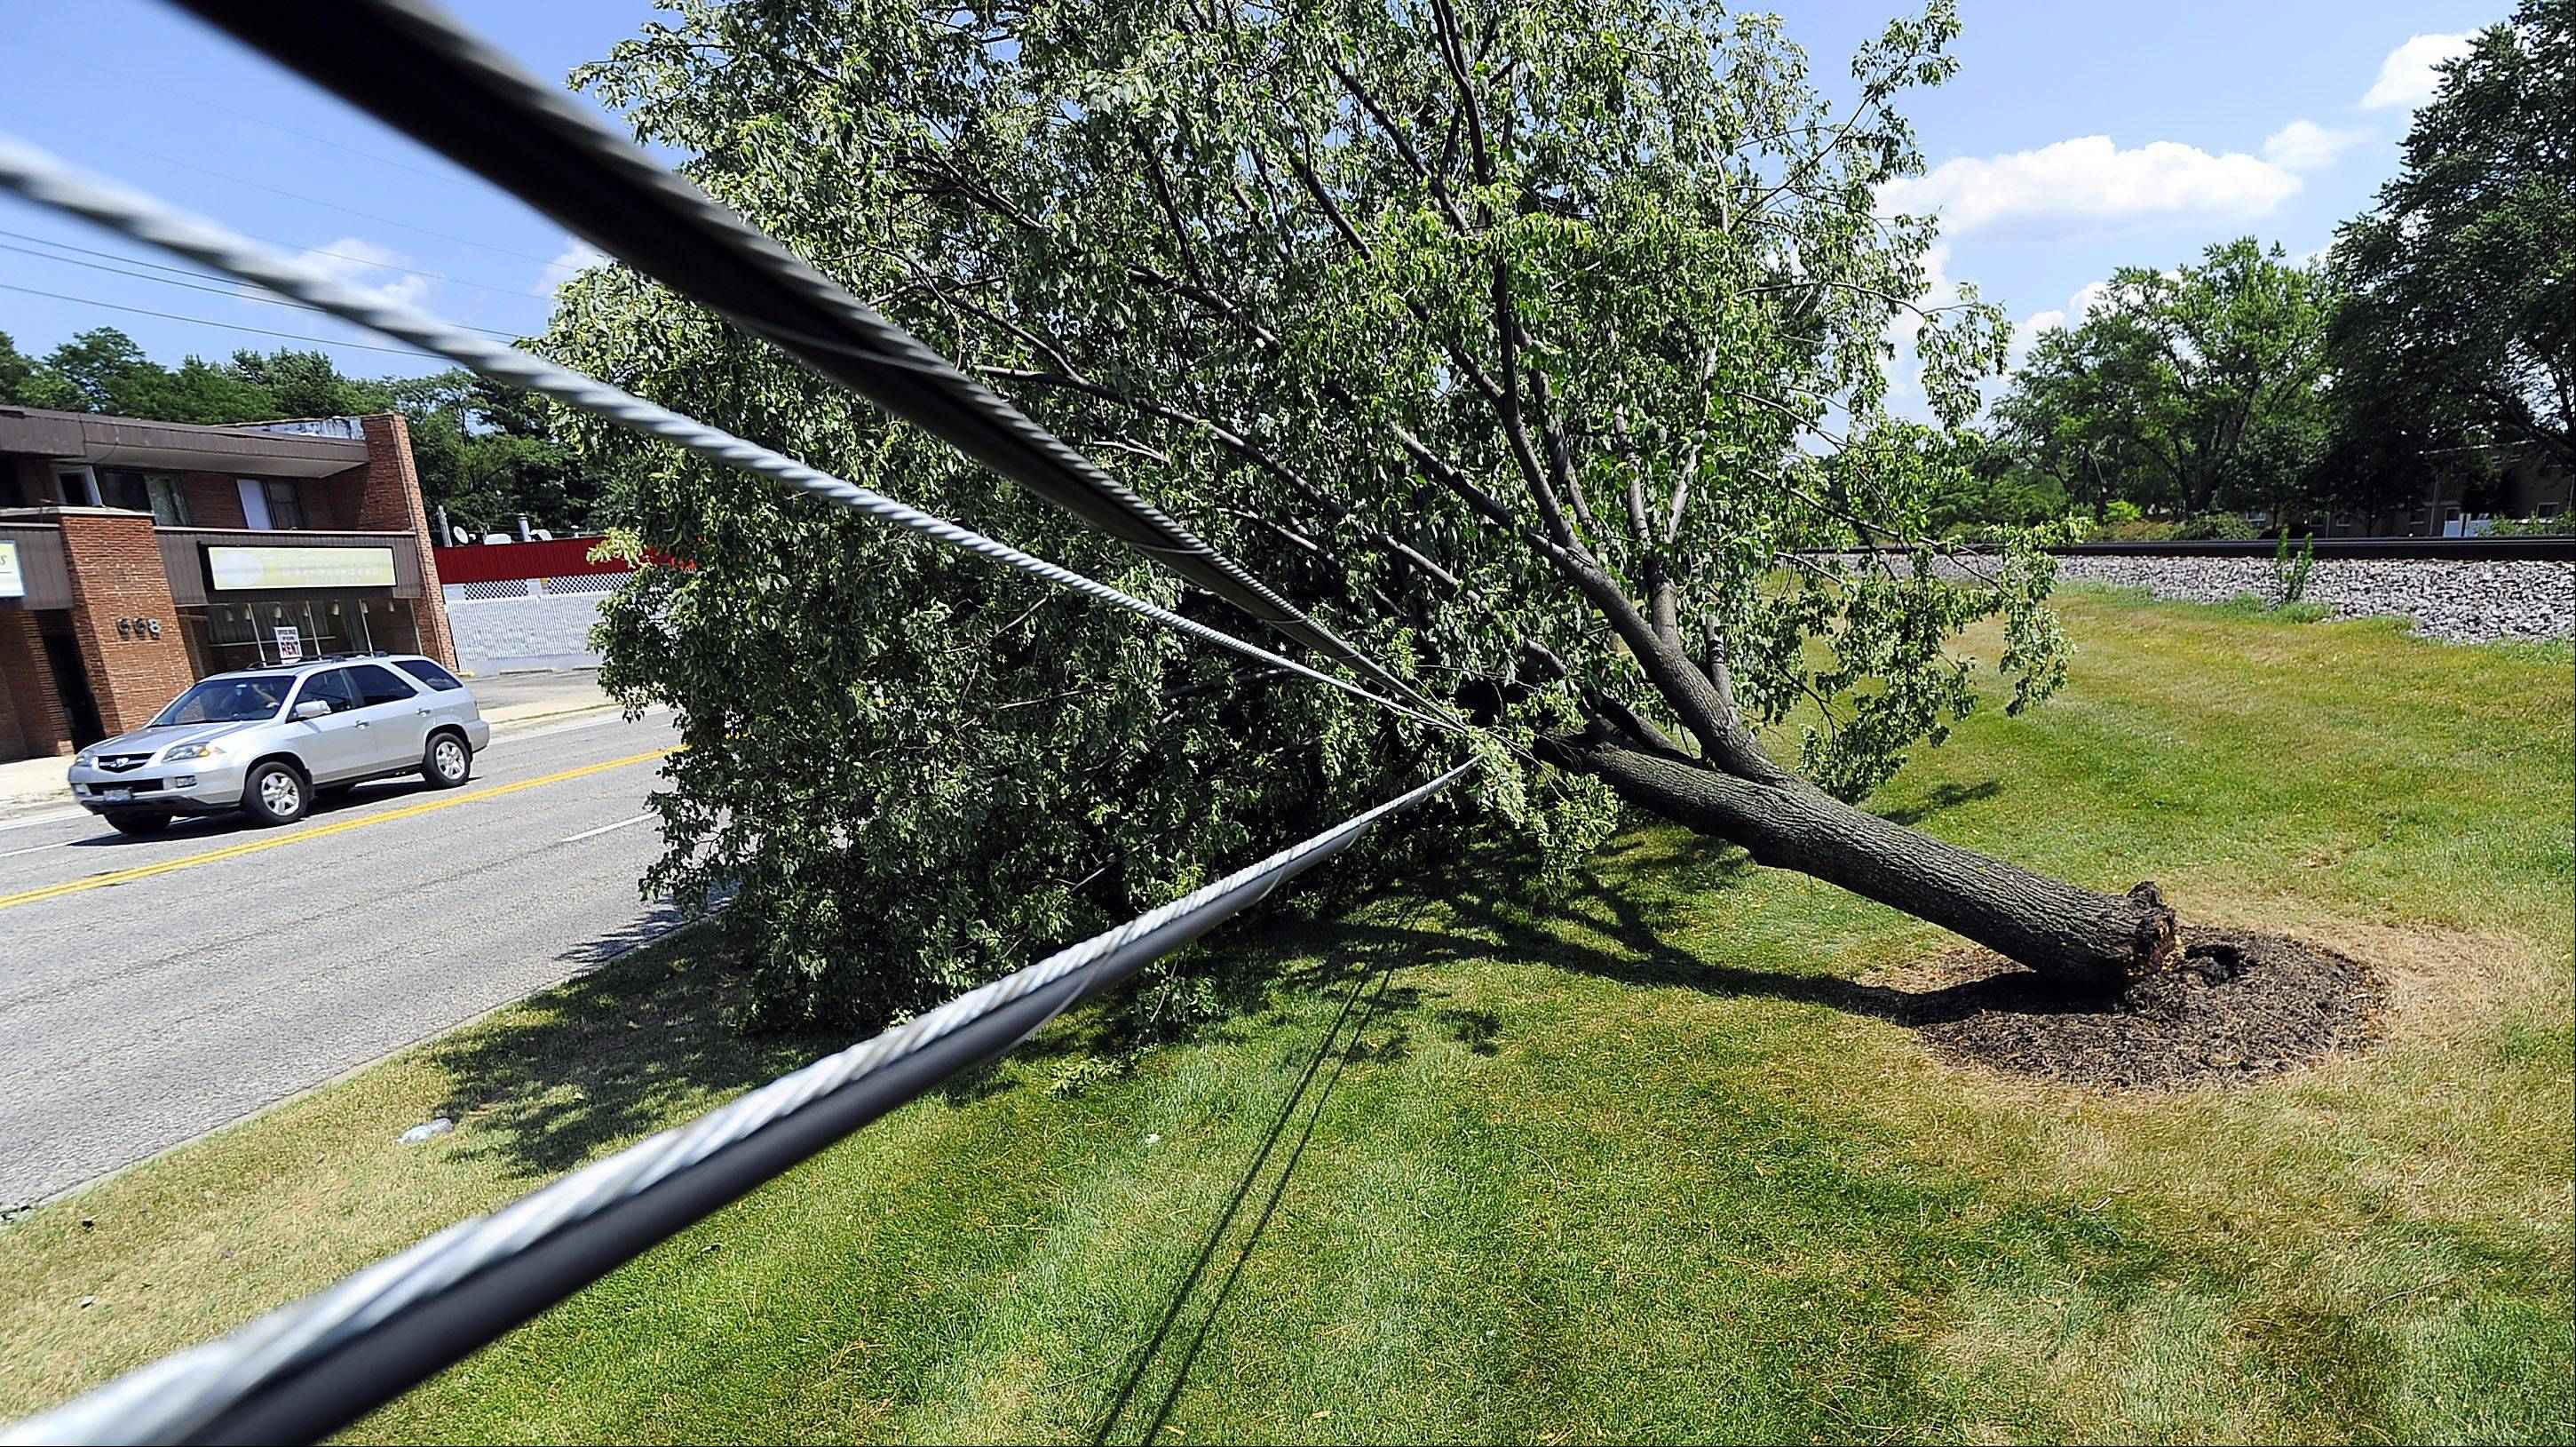 Nearly all Northwest suburban ComEd customers who lost power after Friday's storms downed power lines across the region had their electricity restored by late Sunday morning, officials said.